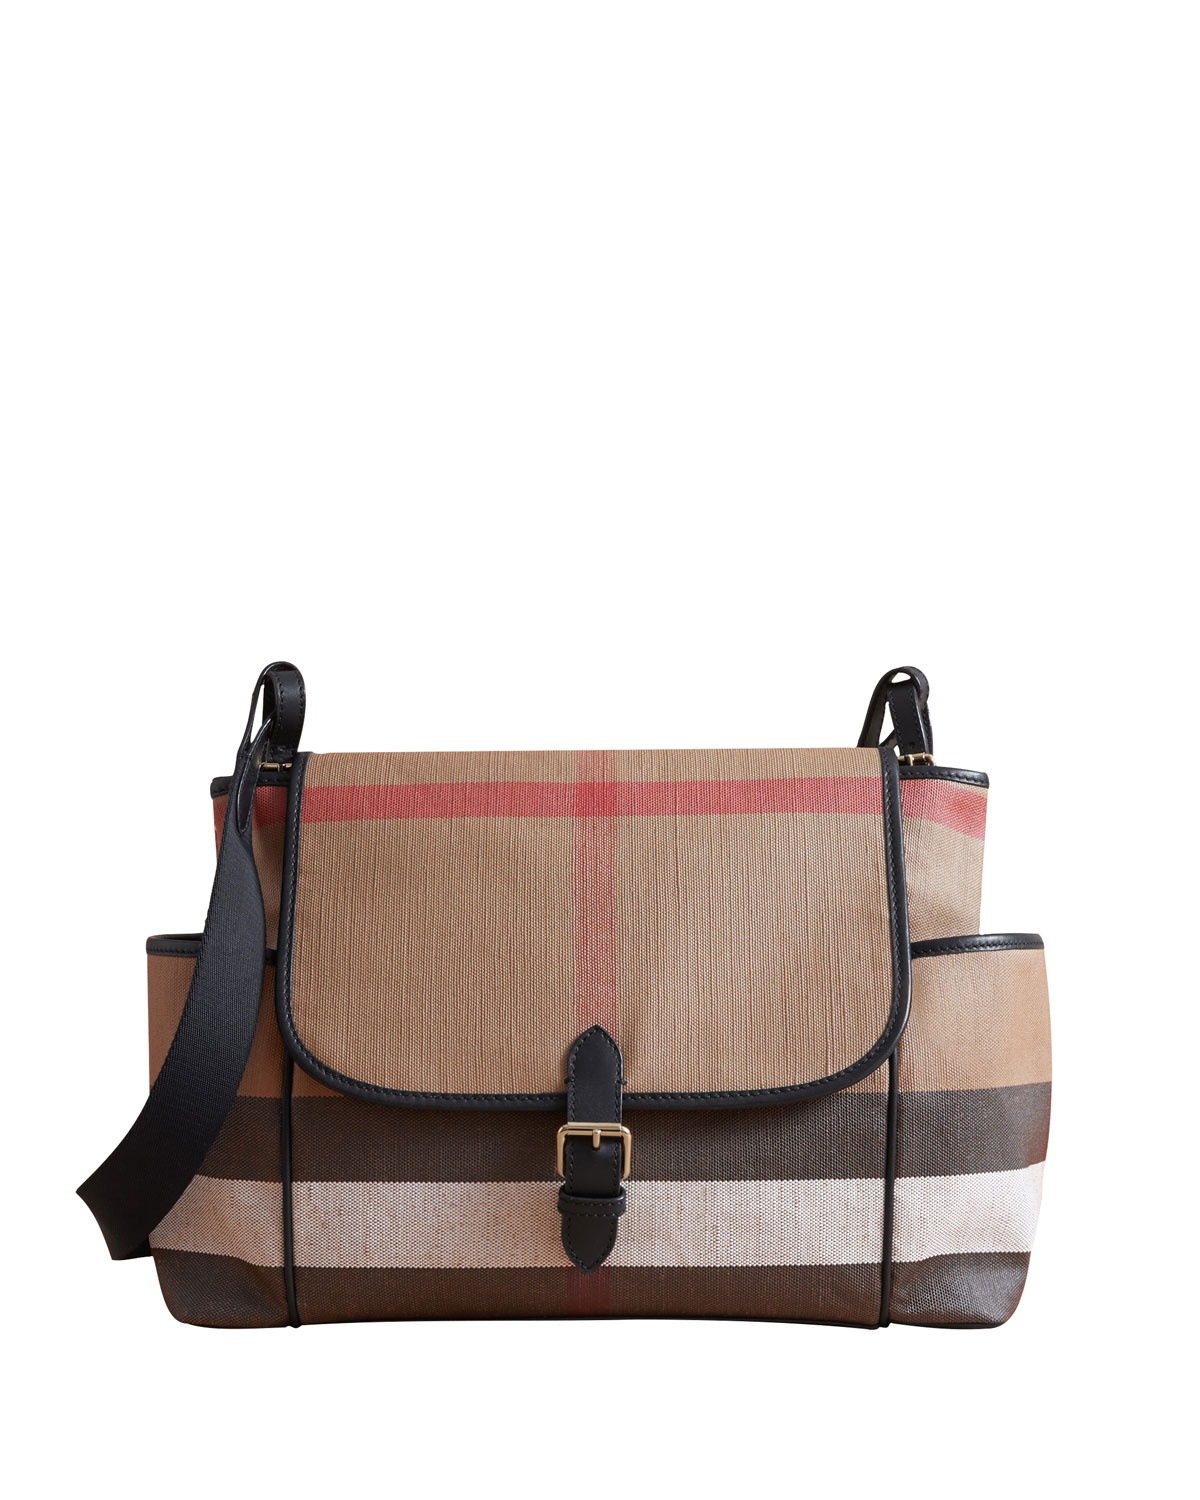 Burberry Flap-Top Check Canvas Diaper Bag  70104d03b5e28